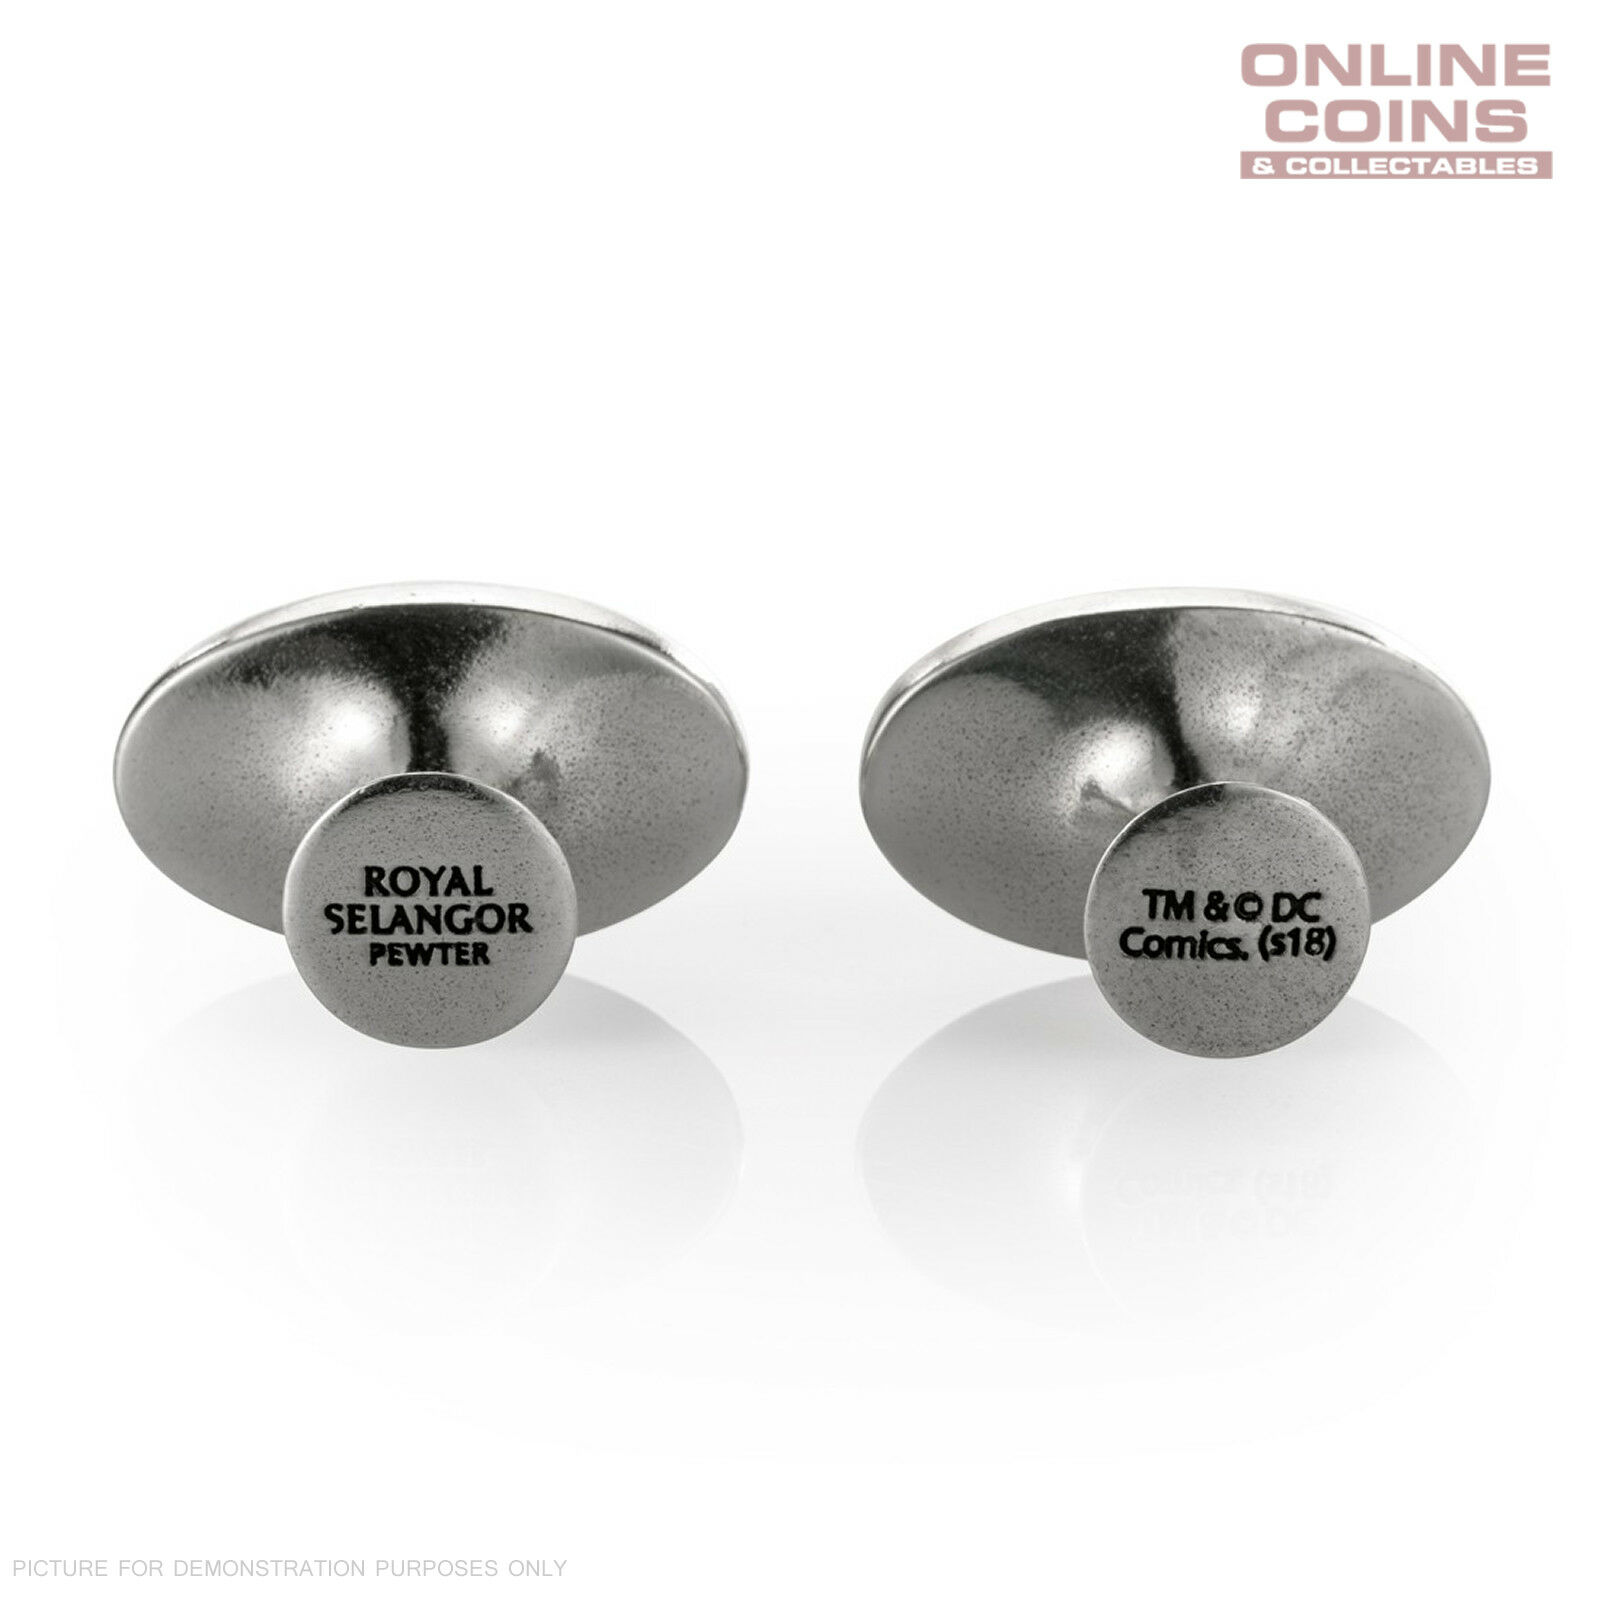 DC Comics Pewter Batman Insignia Cufflinks Officially Licensed by Royal Selangor